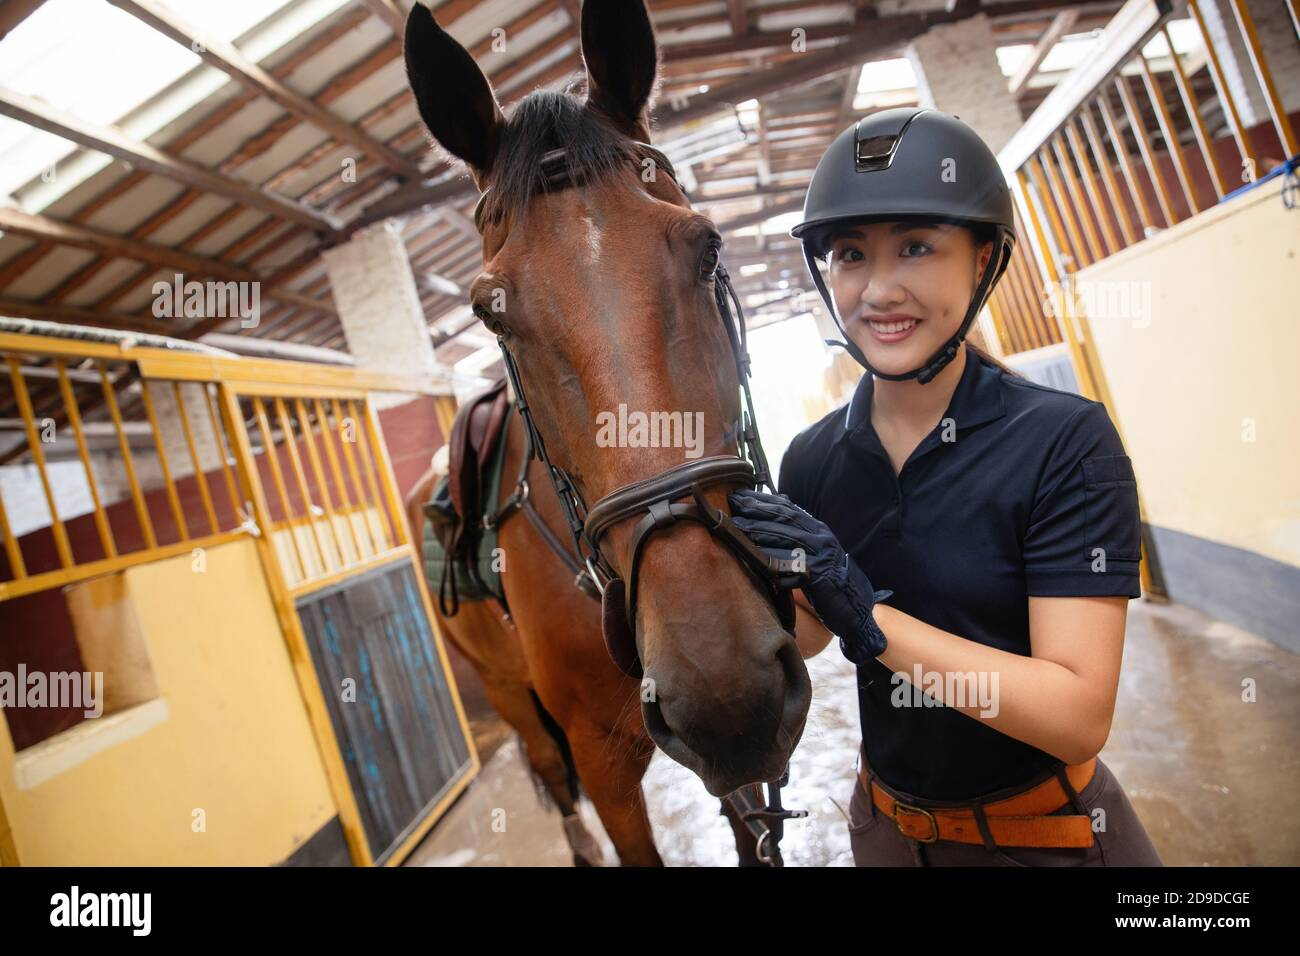 The Stables Of Horses And A Beautiful Young Woman Stock Photo Alamy